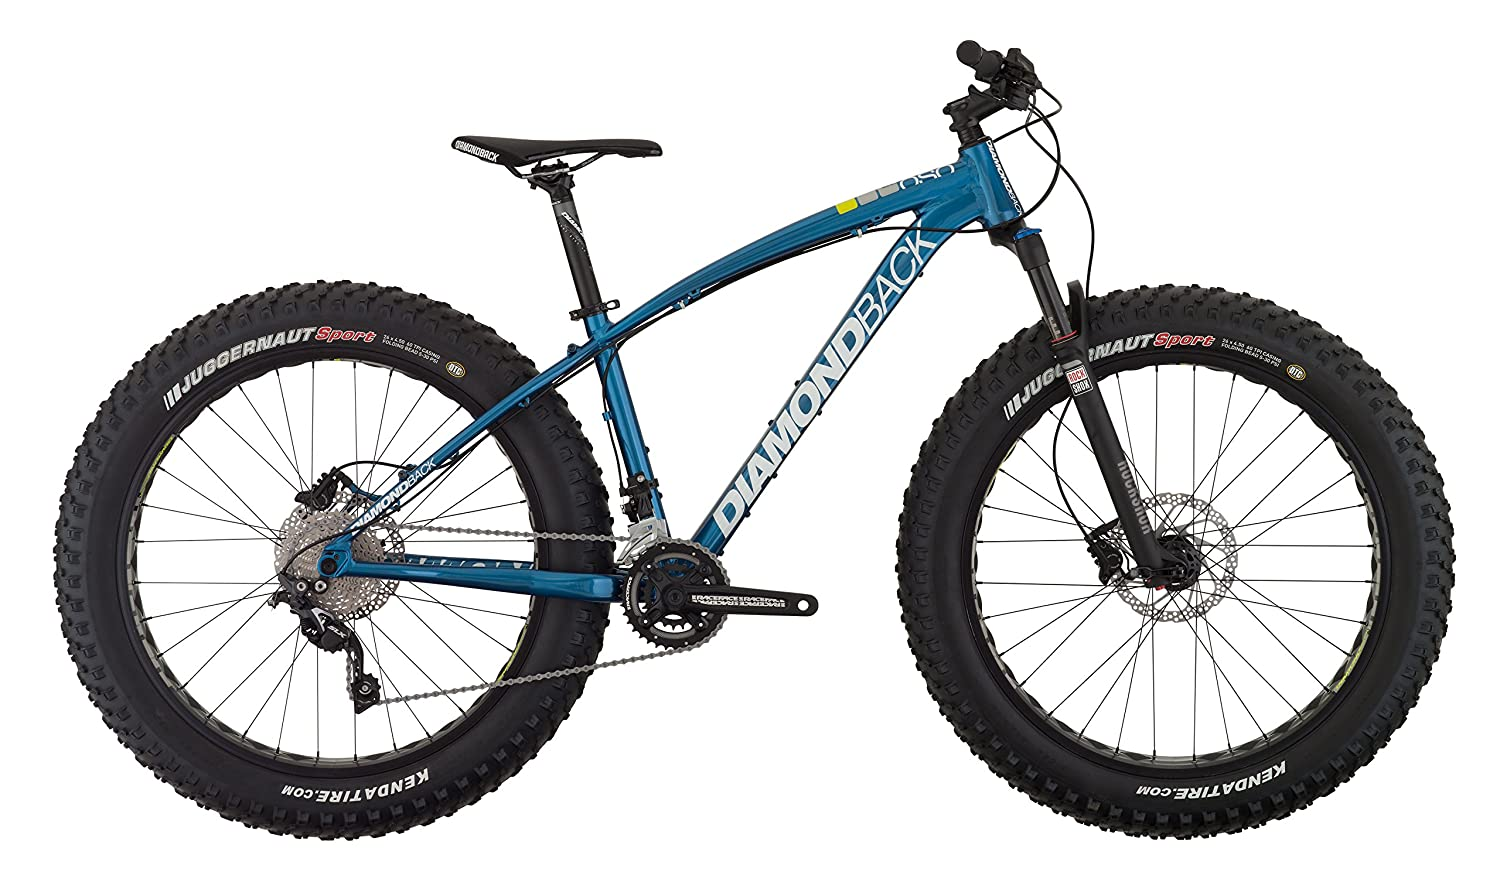 Diamondback El Oso Fat Tire Mountain Bike Review